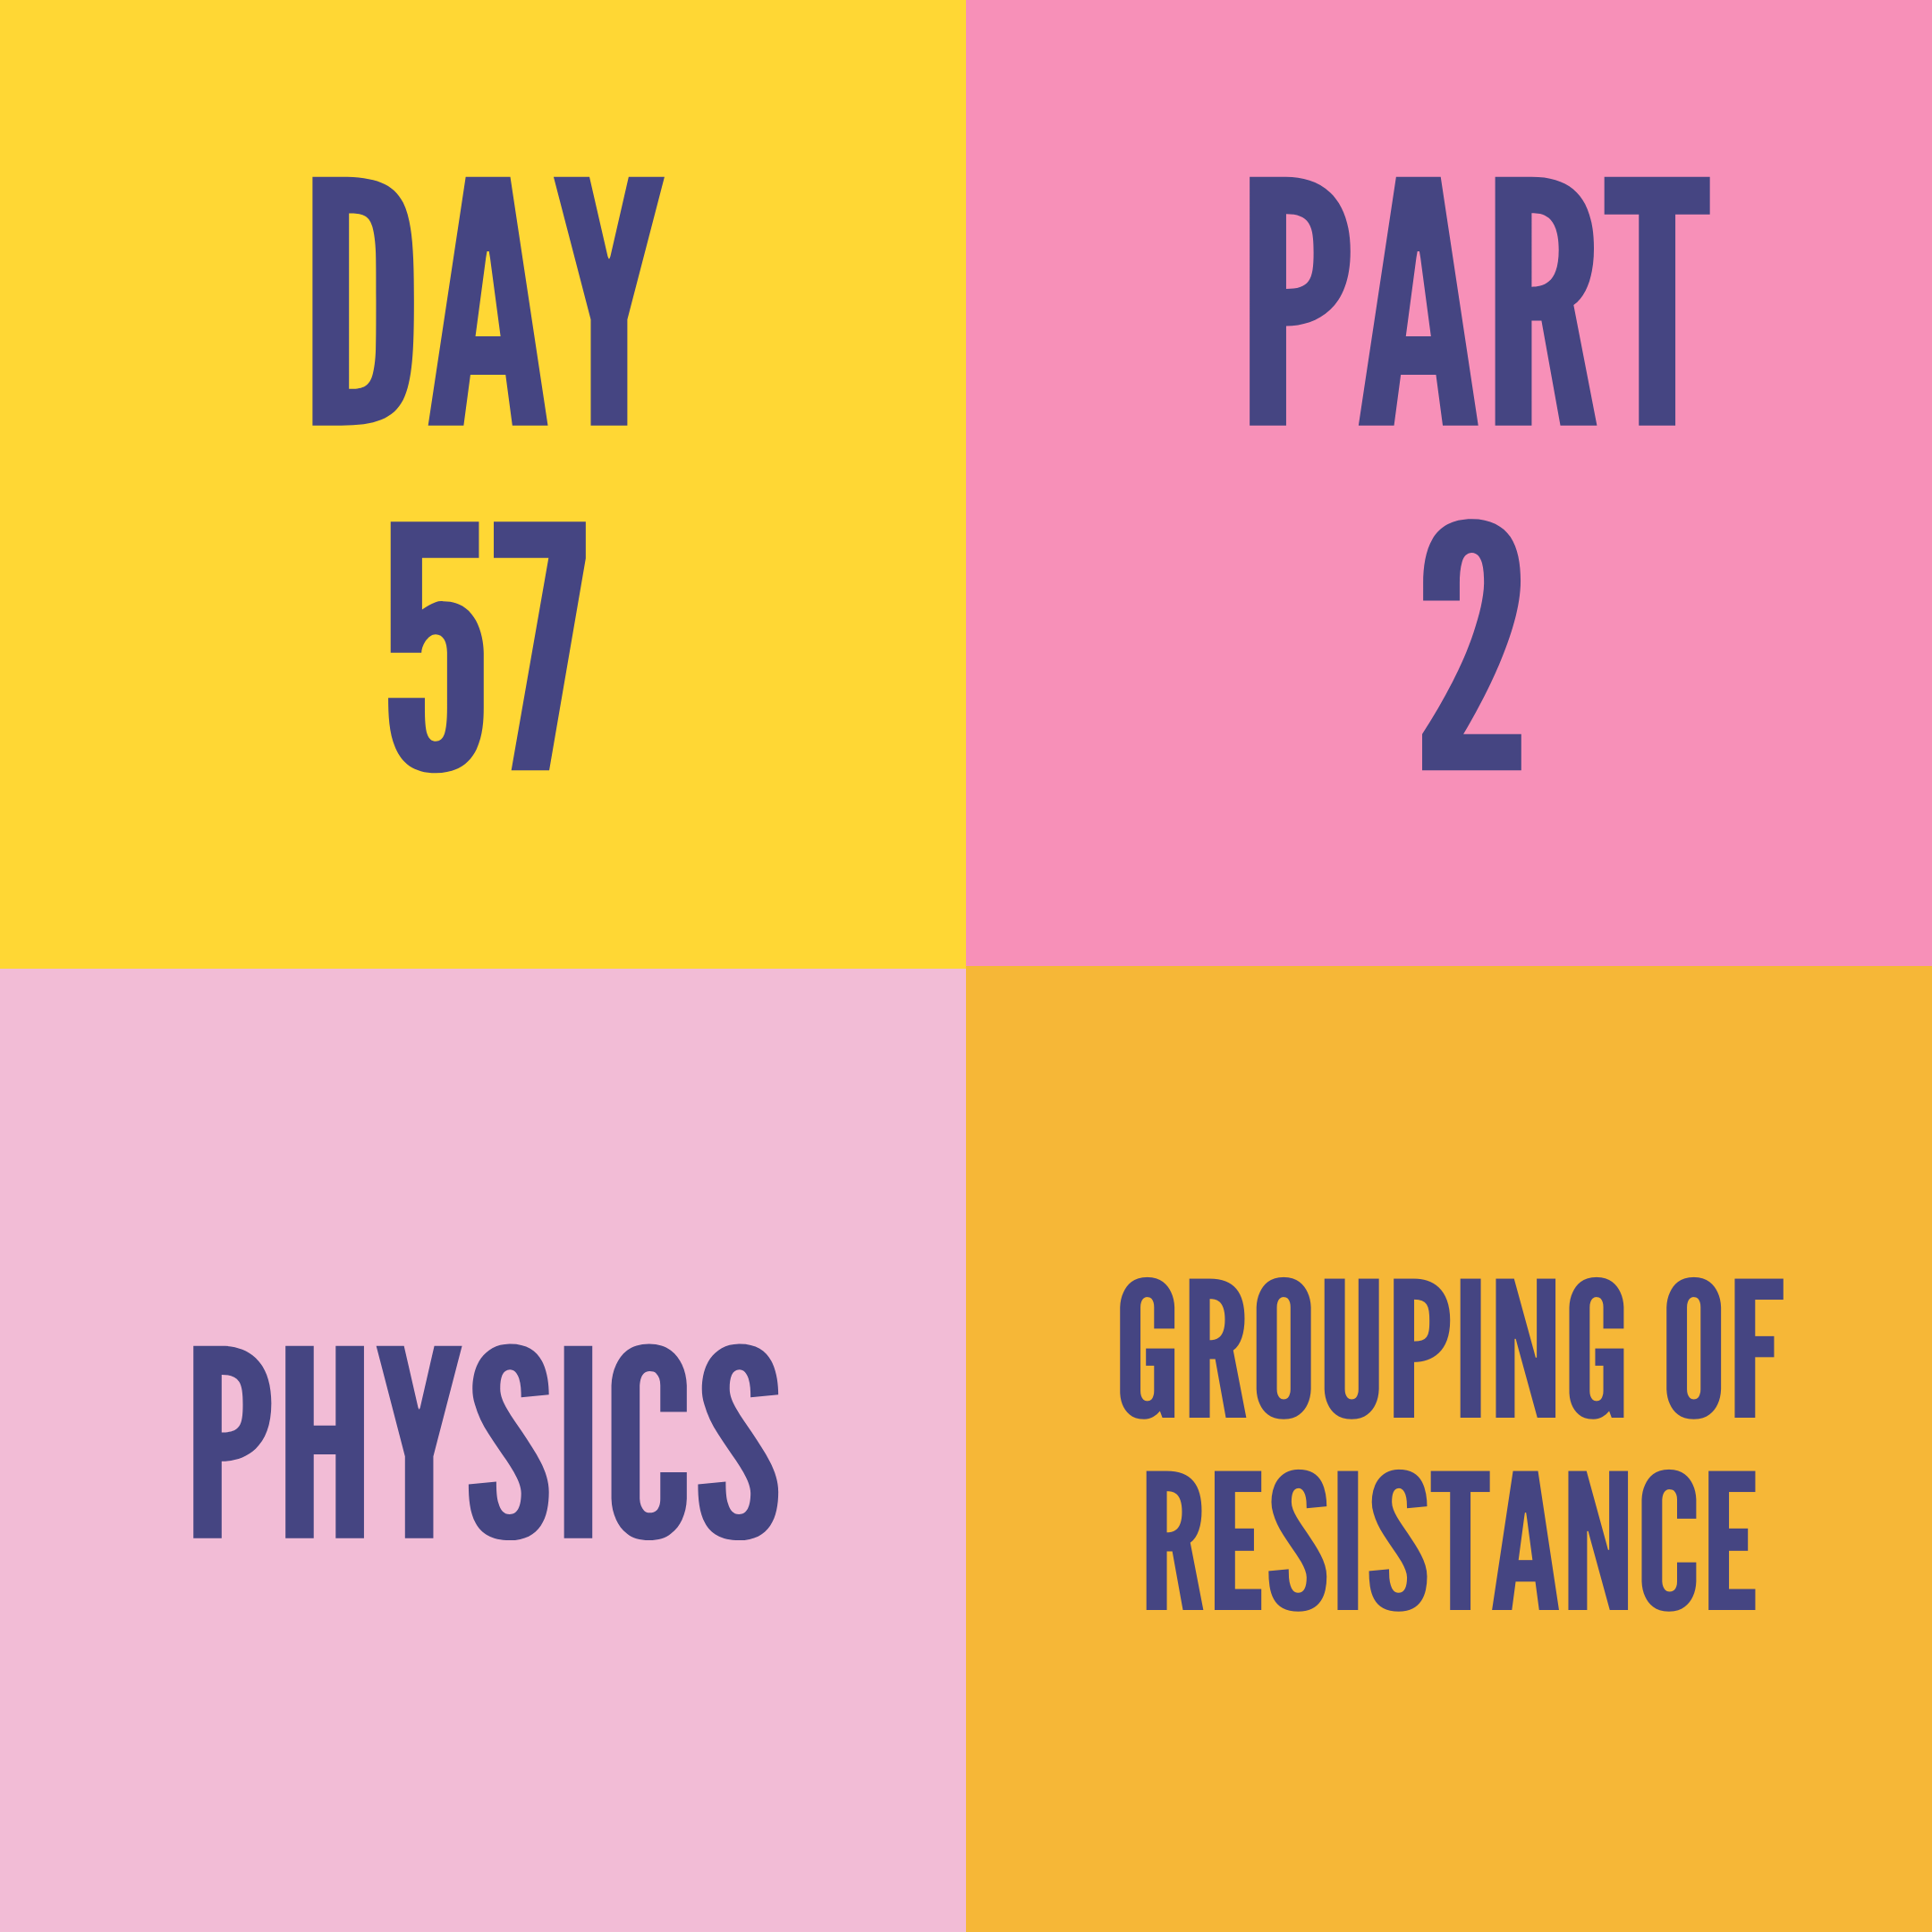 DAY-57 PART-2  GROUPING OF RESISTANCE